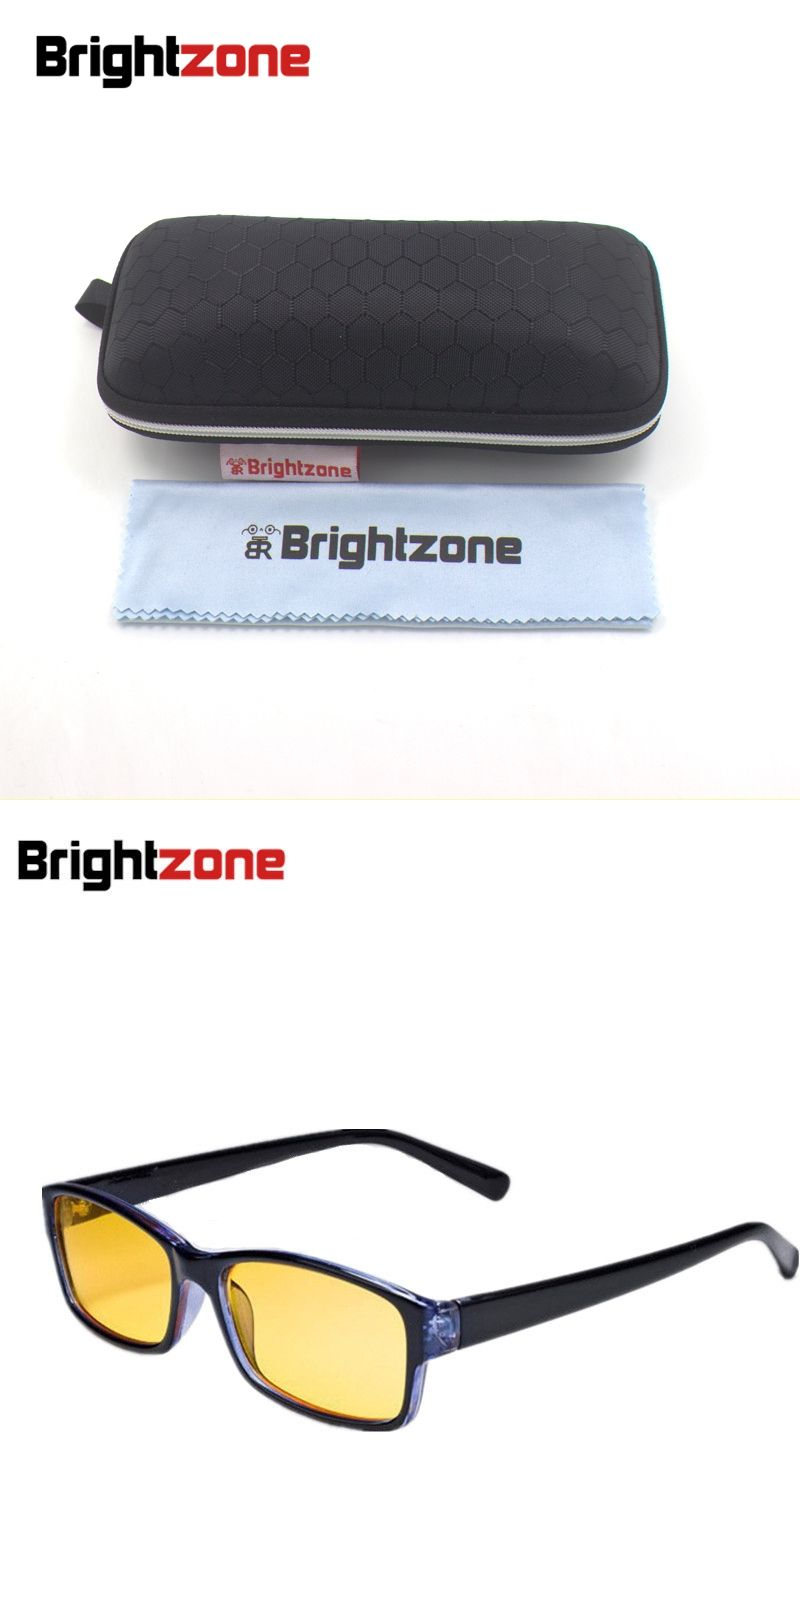 d372ba61cab2 New Arrival Men Women Anti-Radiation UV Fatigue Blue Light Blocking  Computer Gaming Eye Glasses Yellow Indoor Digital Eyewear